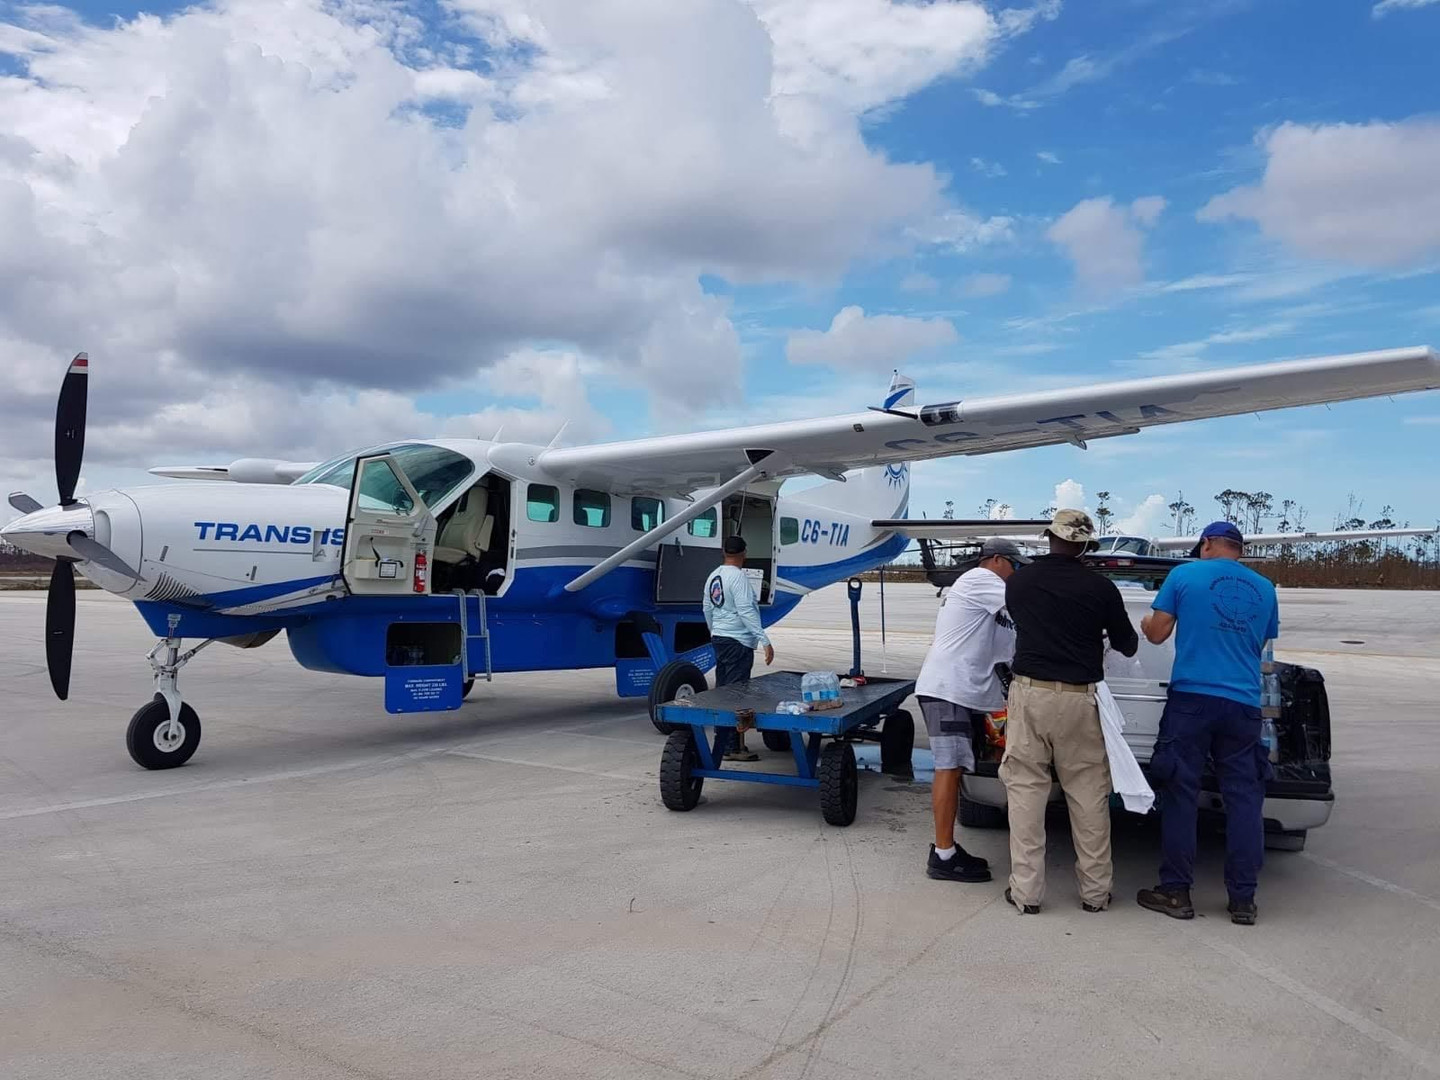 Trans Island Airways loading up their plane with relief items